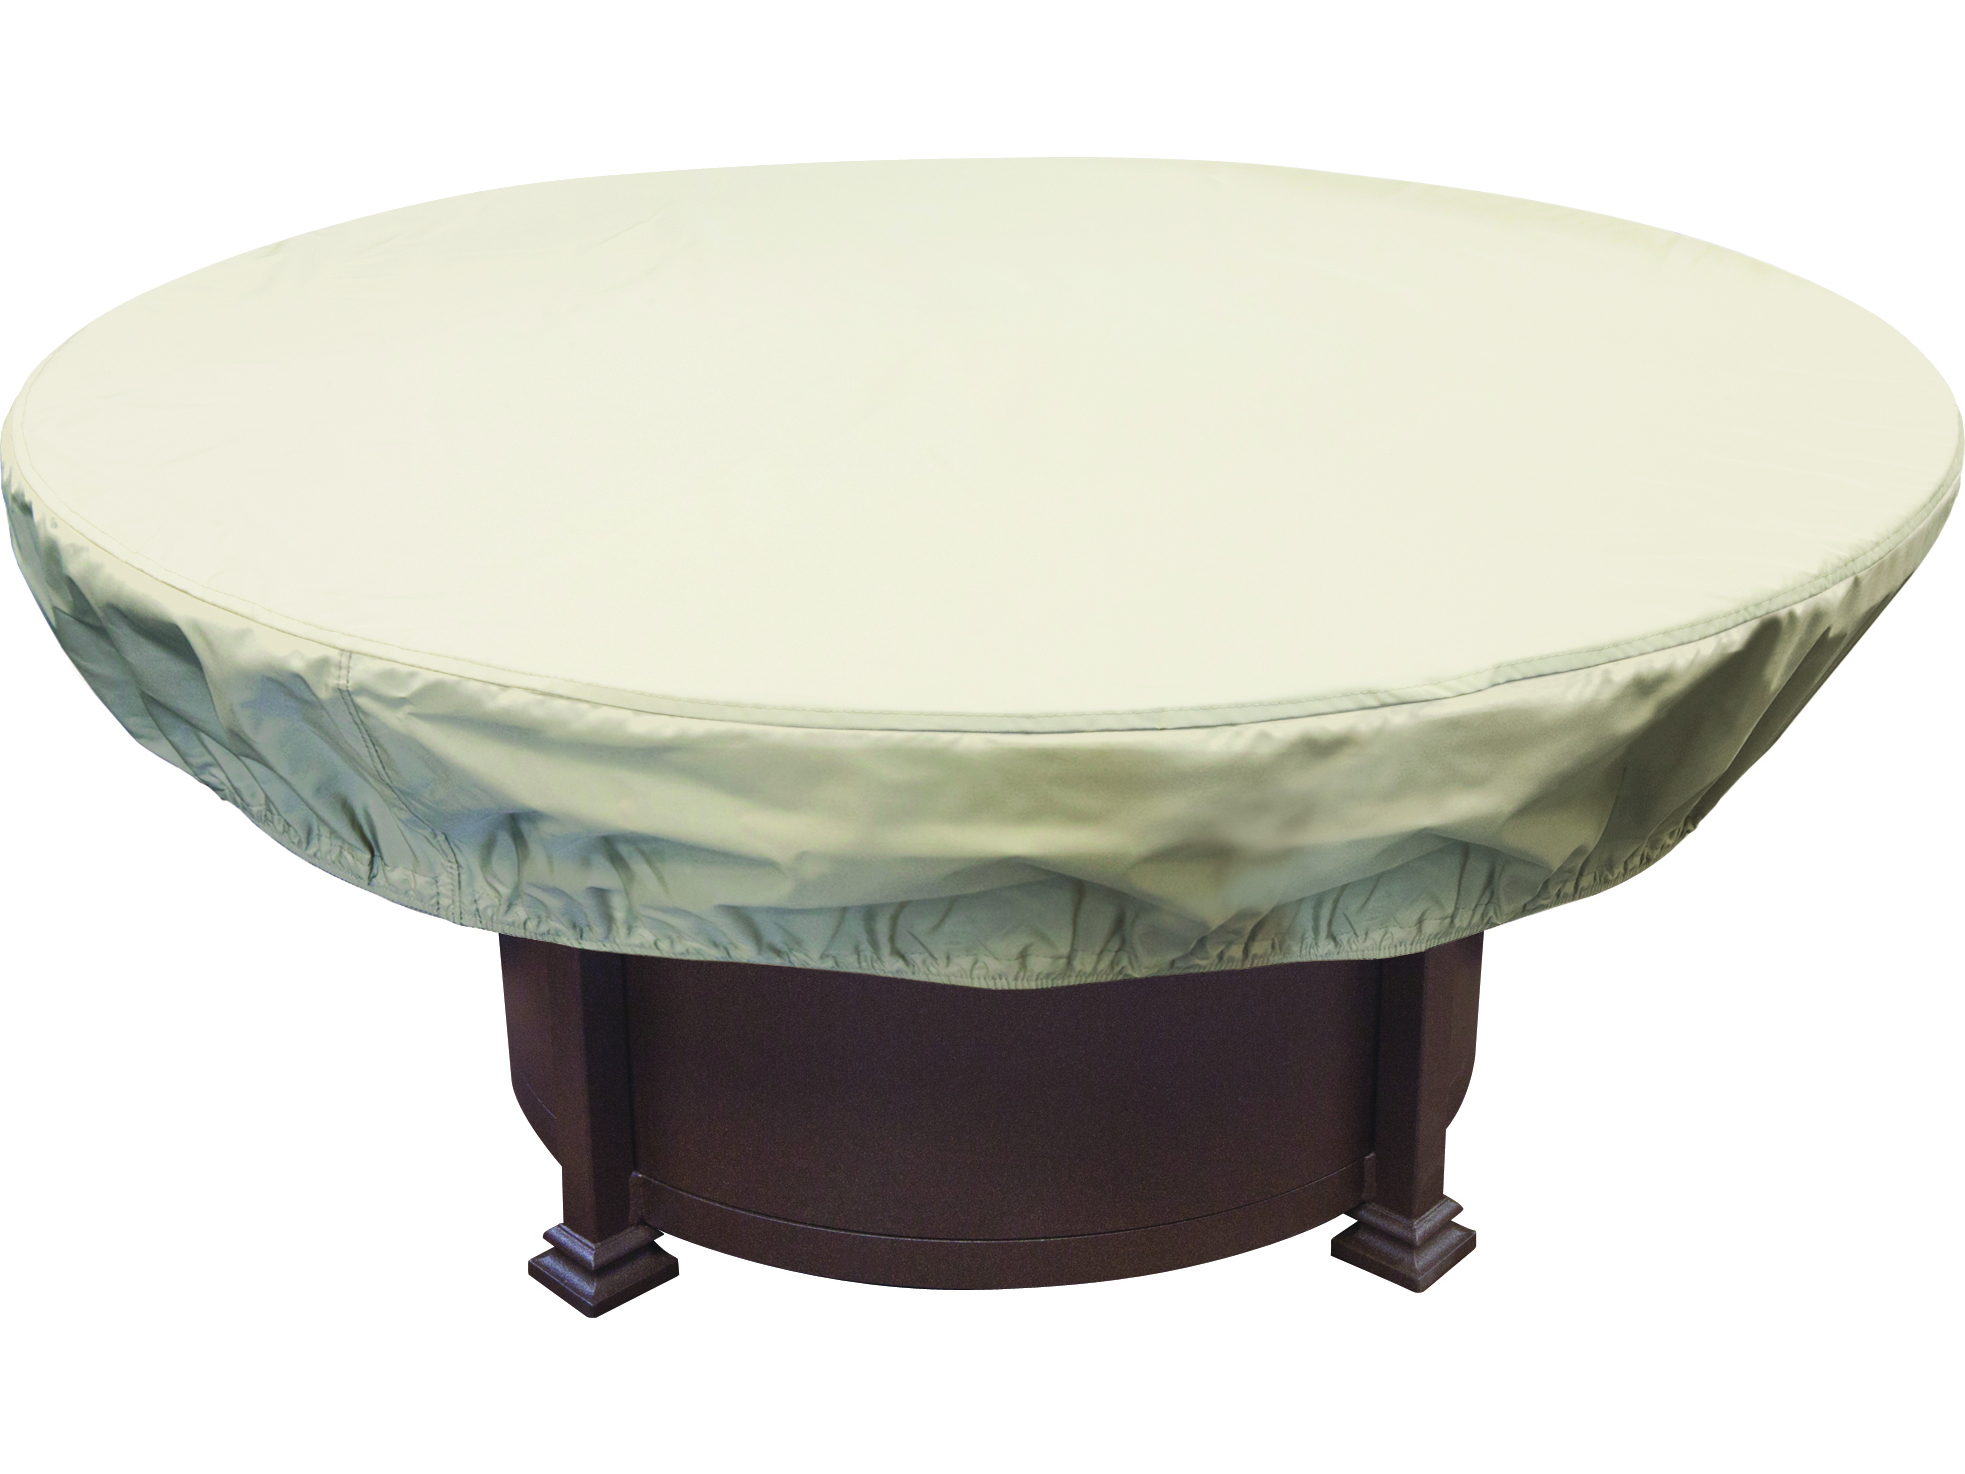 Treasure garden 48 54 round chat and fire pit cover excp930 for Treasure garden patio furniture covers